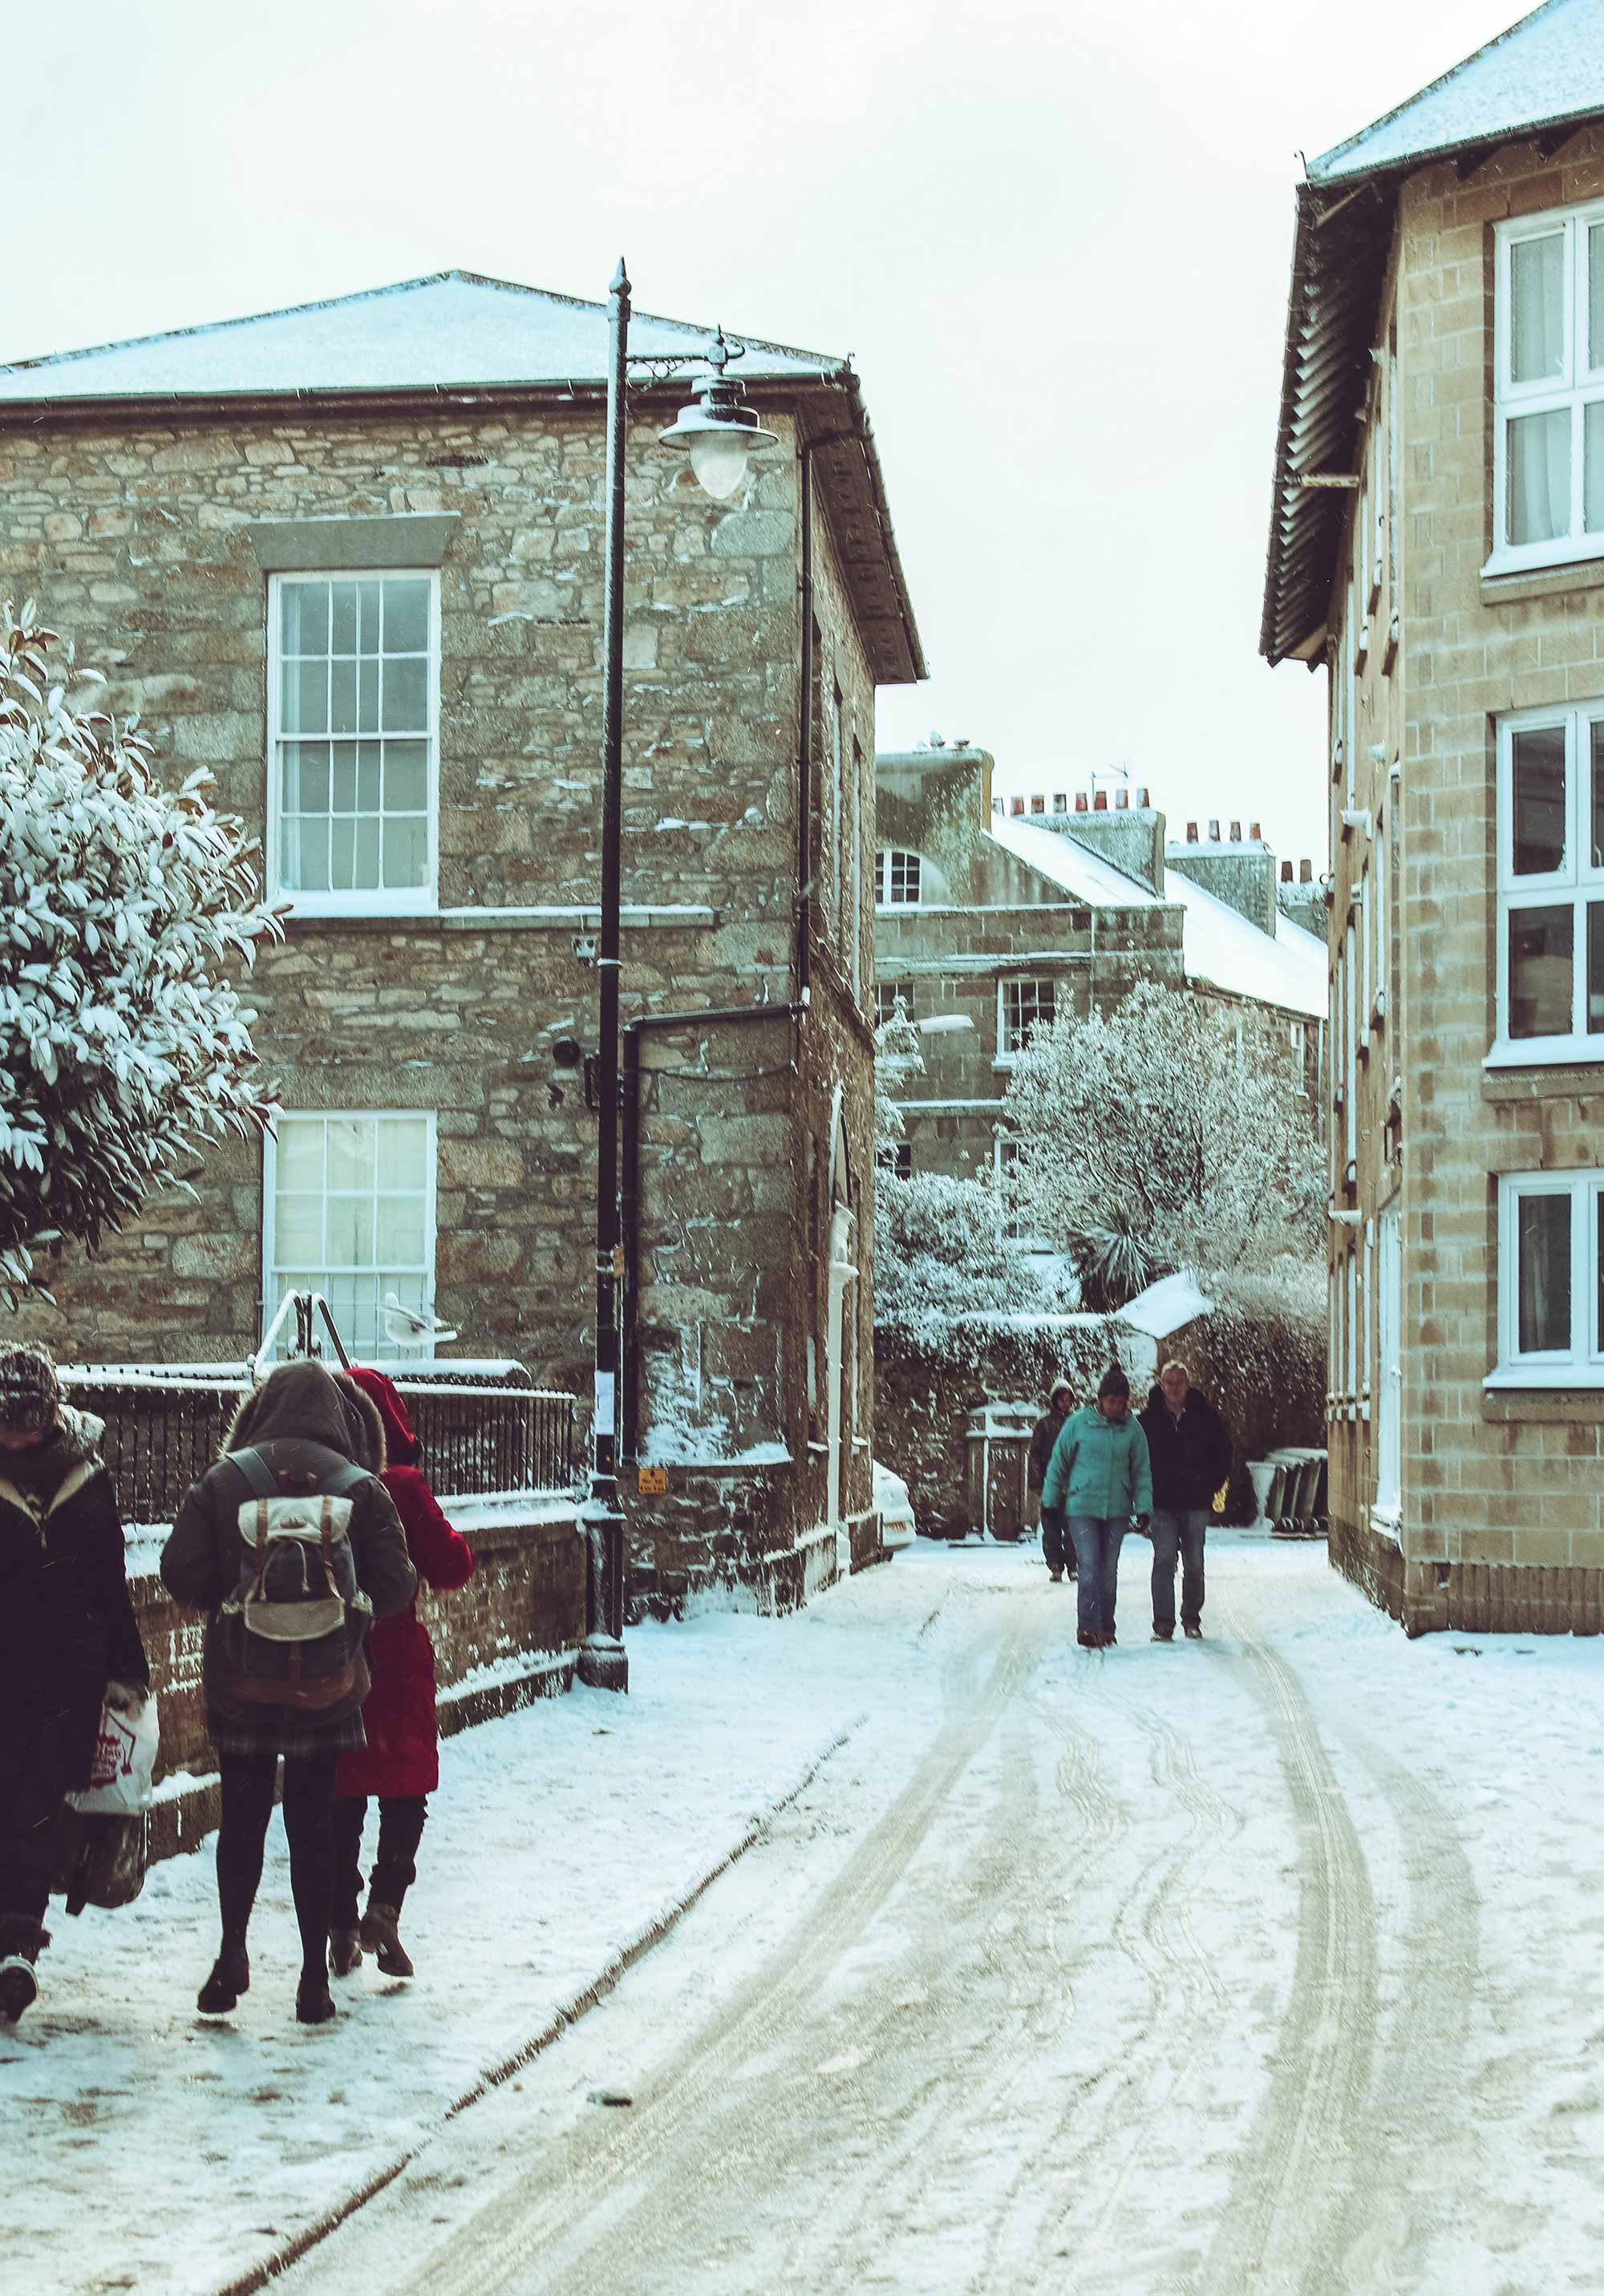 People Walking on Snow Covered Street, Snow, Snowy, Road, Street, HQ Photo